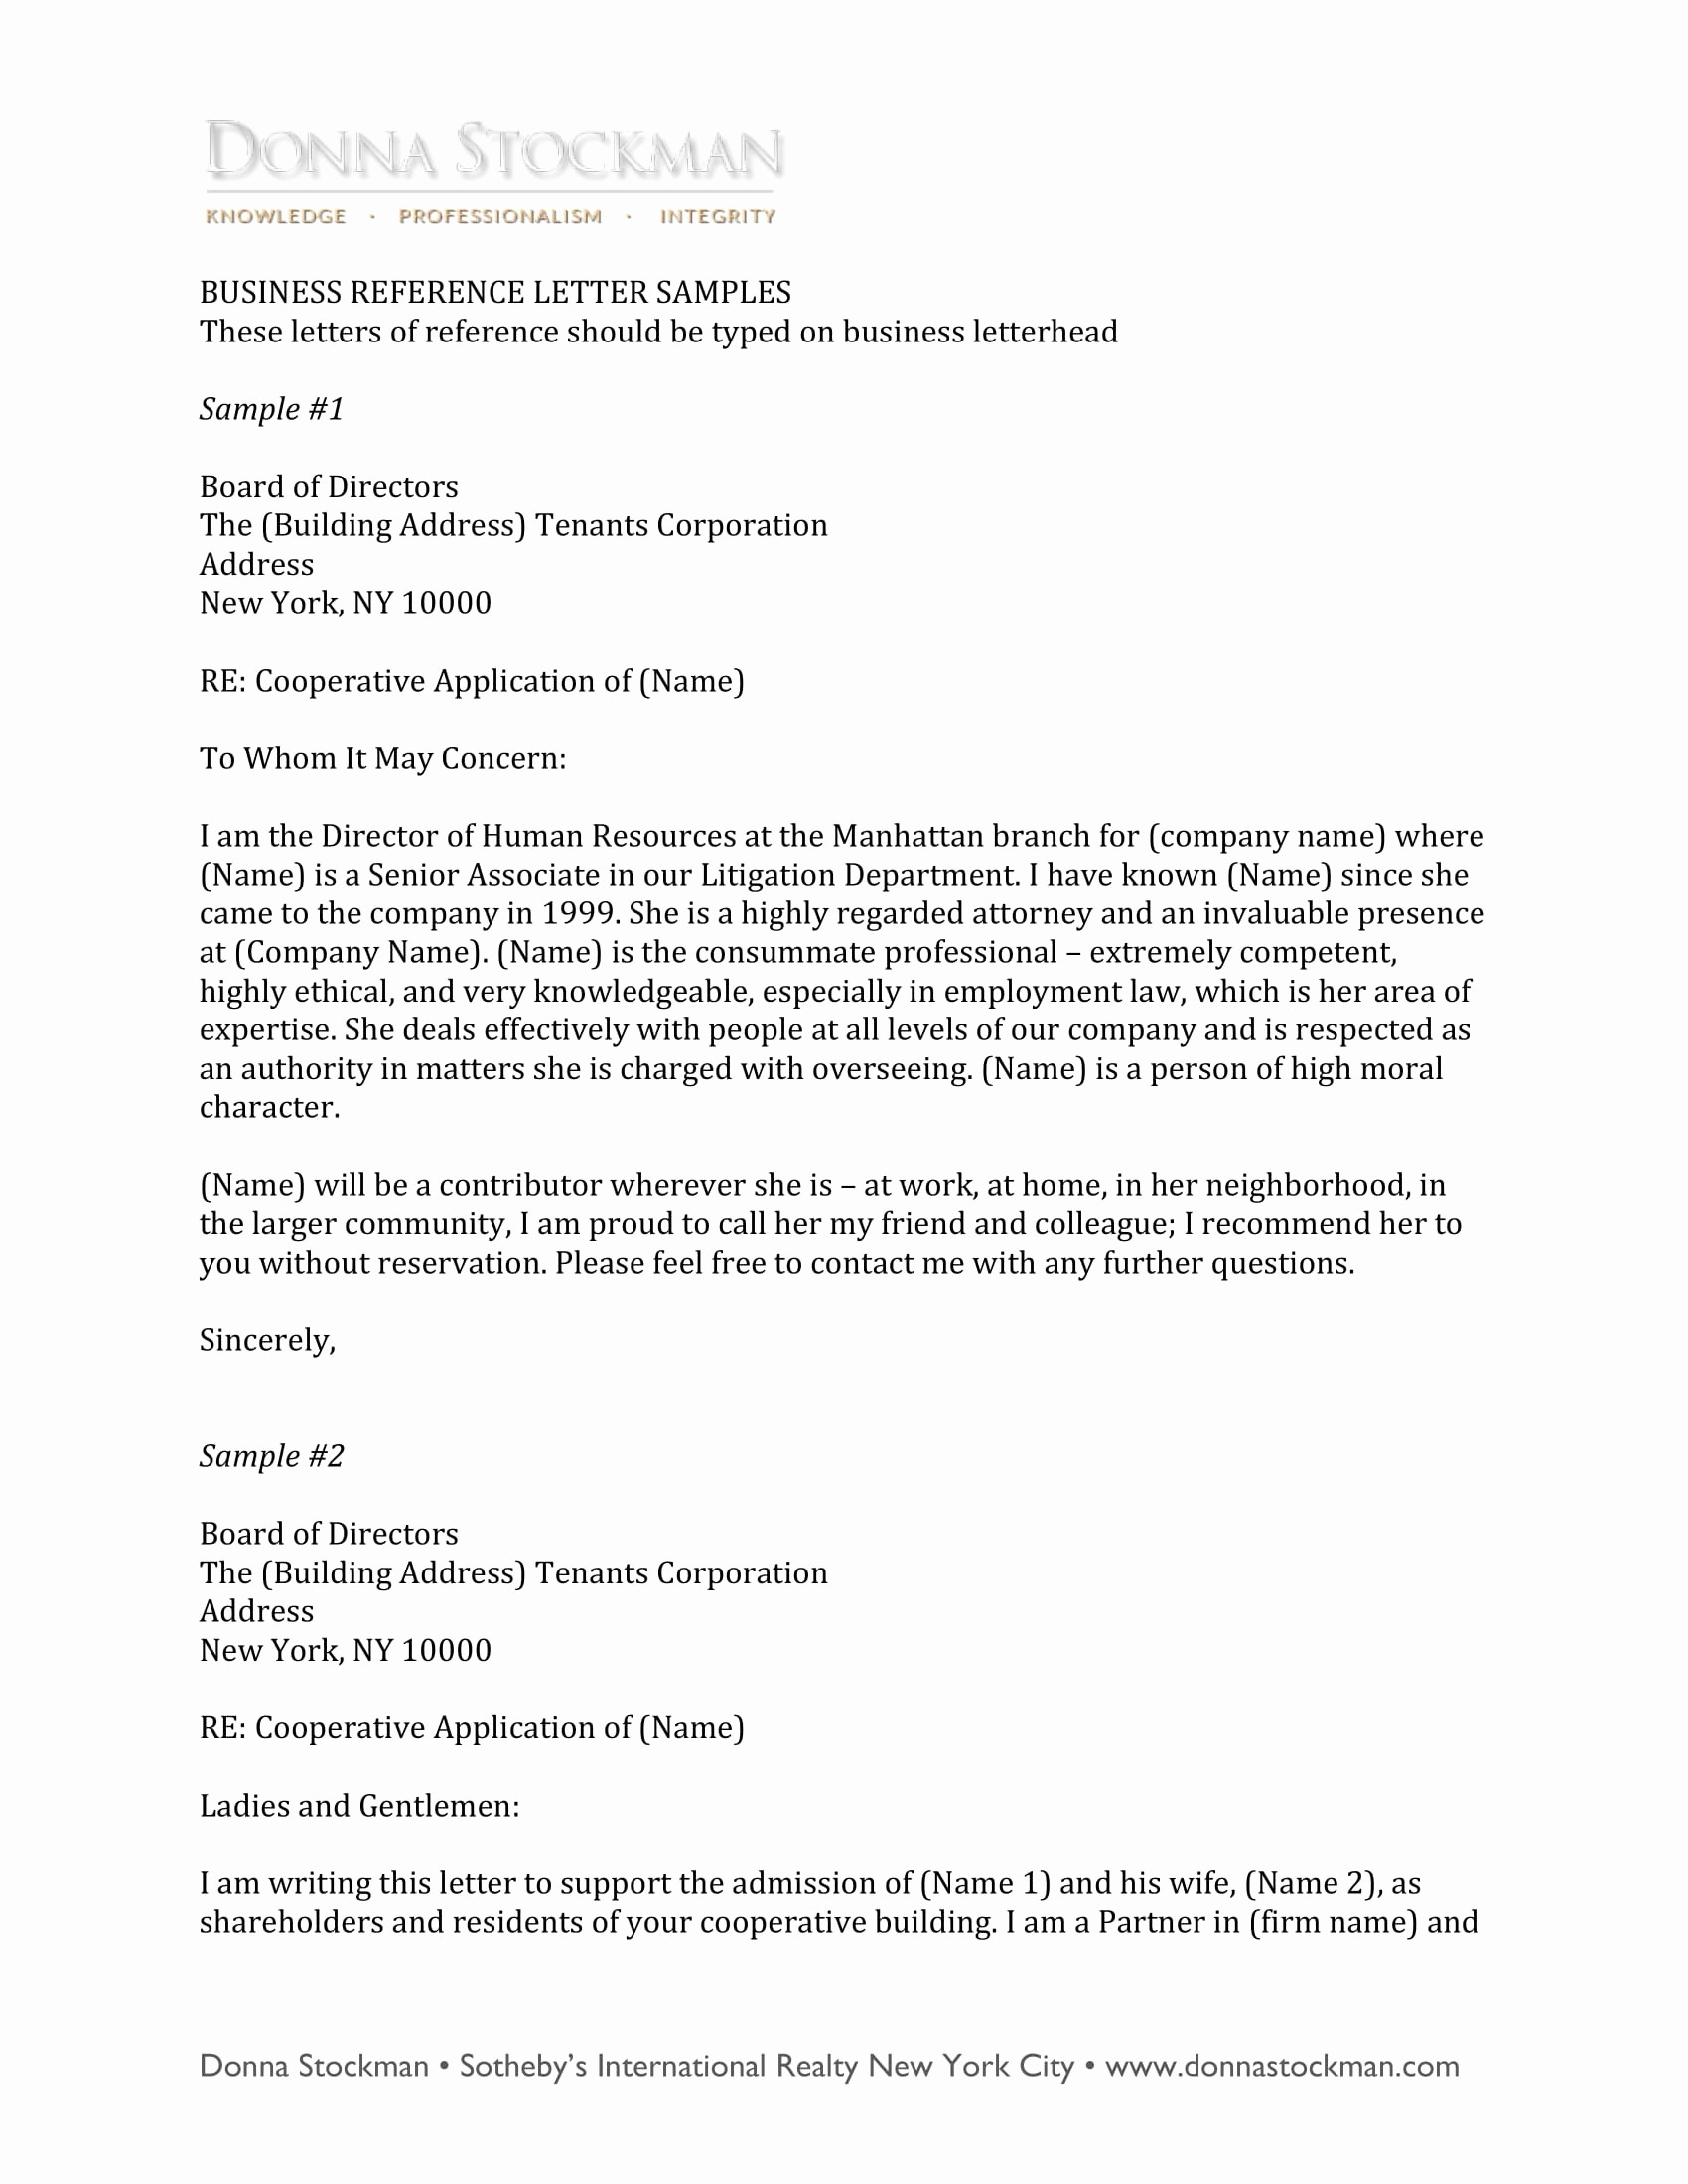 Sample Professional Letter Of Recommendation Awesome 10 Business Reference Letter Examples Pdf